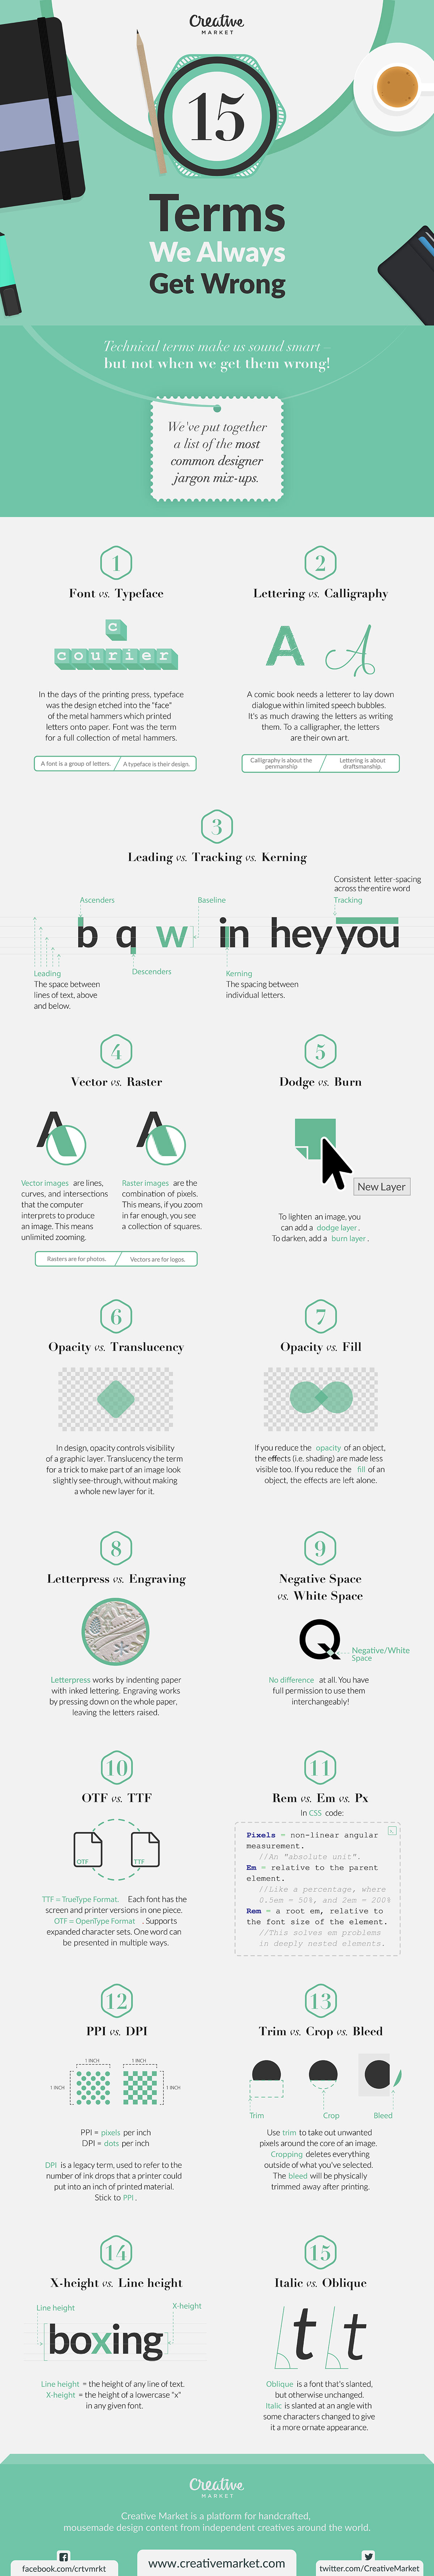 speaking-graphic-design-14-terms-we-always-get-wrong-infographic-01